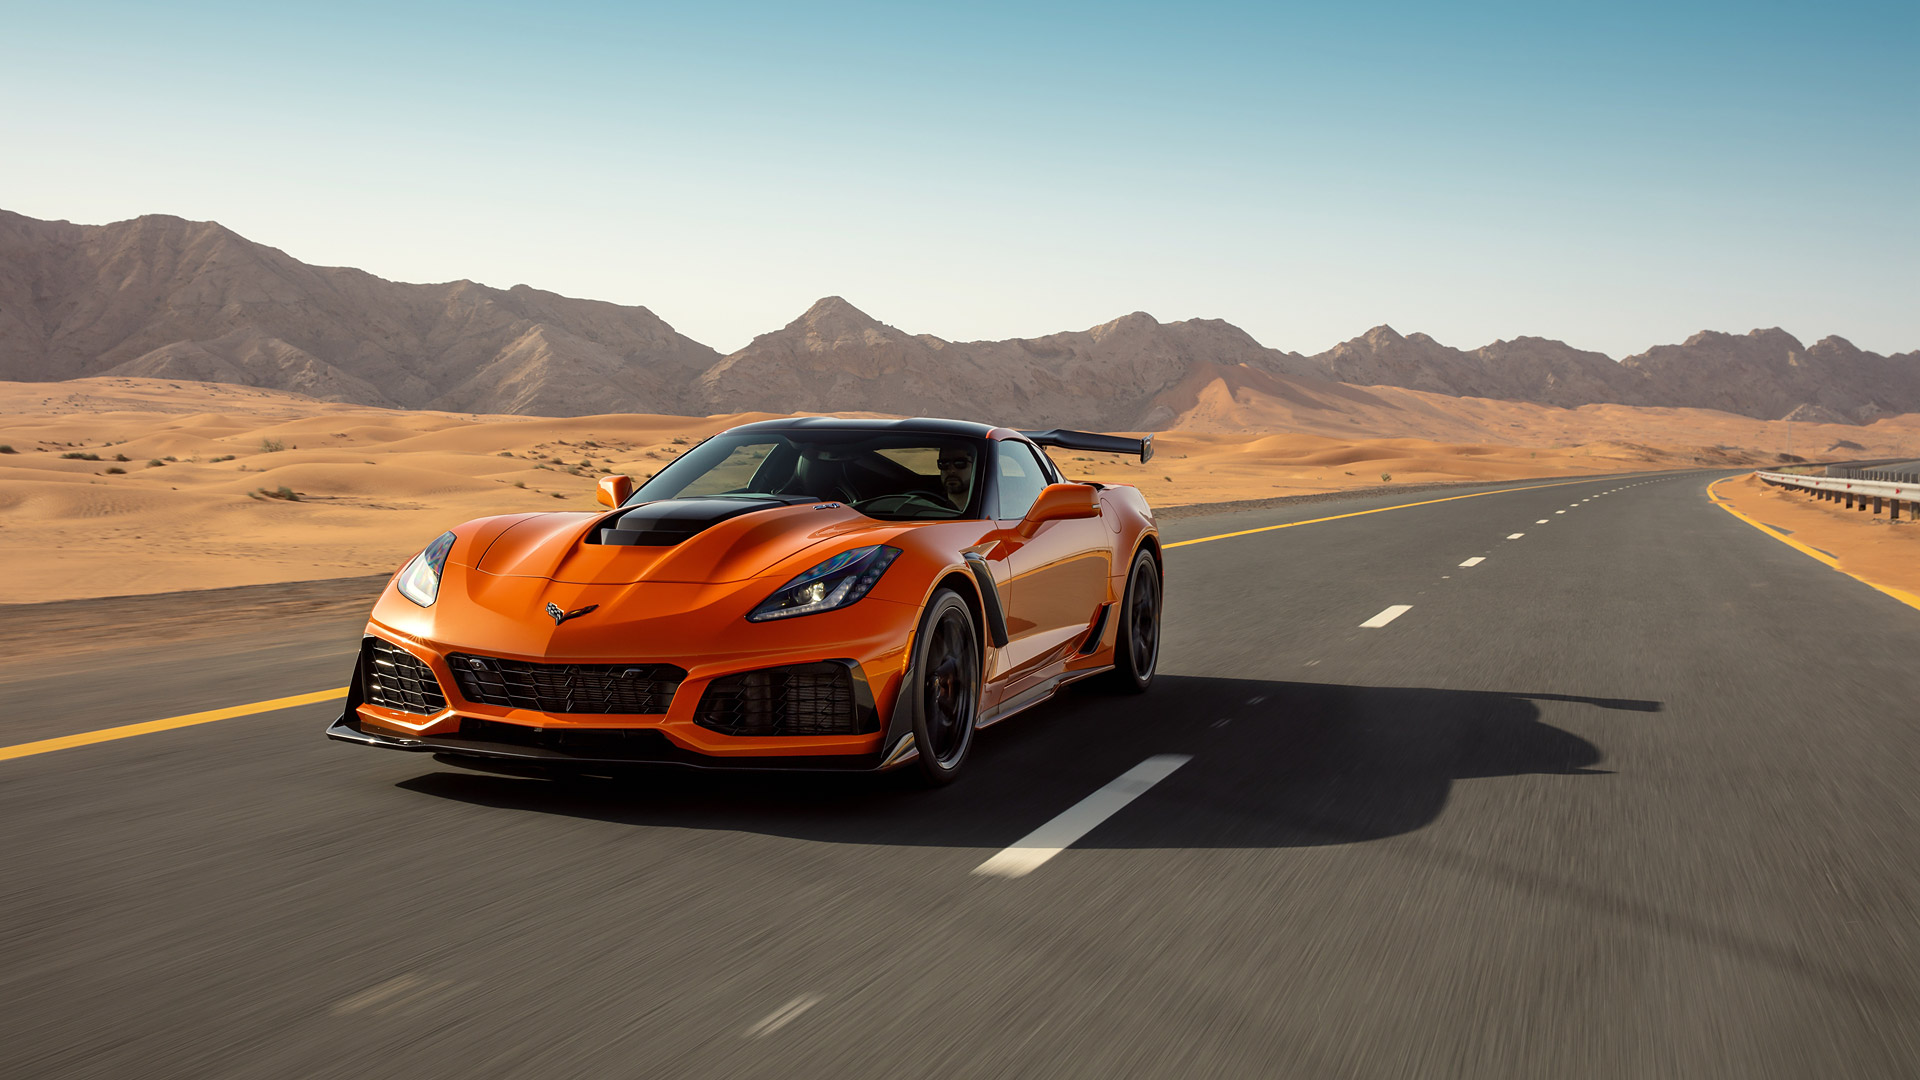 2019 Chevrolet Corvette ZR1 Wallpapers HD Images 1920x1080